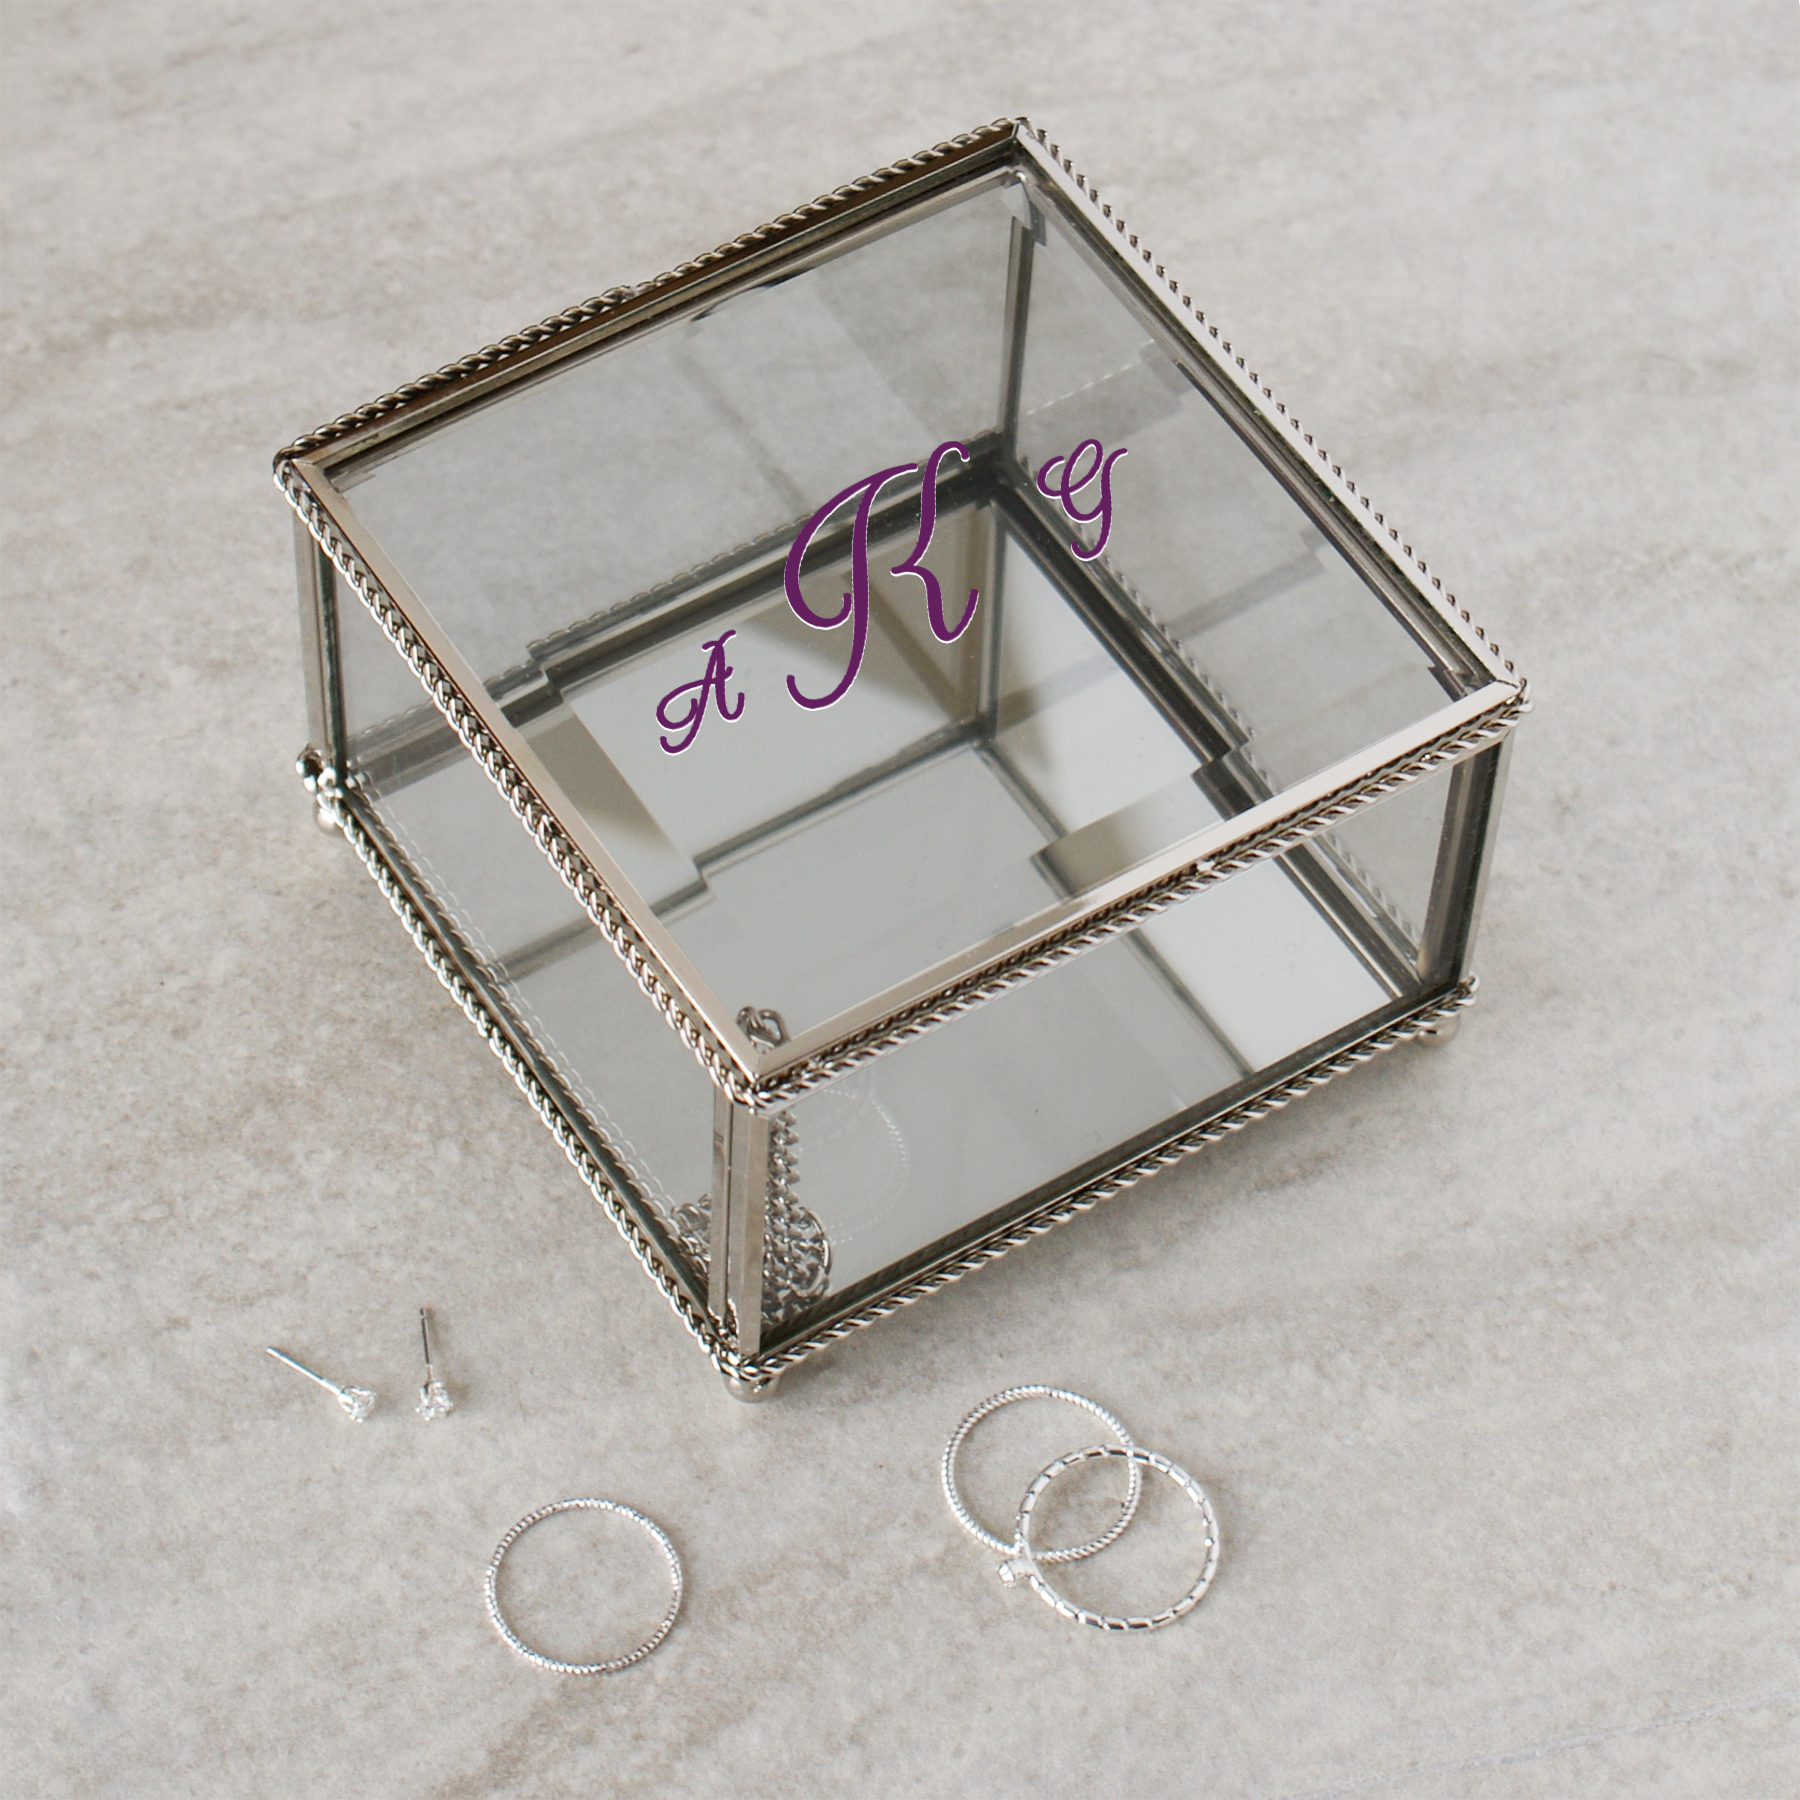 Personalized Monogrammed Jewelry Box | Monogrammed Gifts